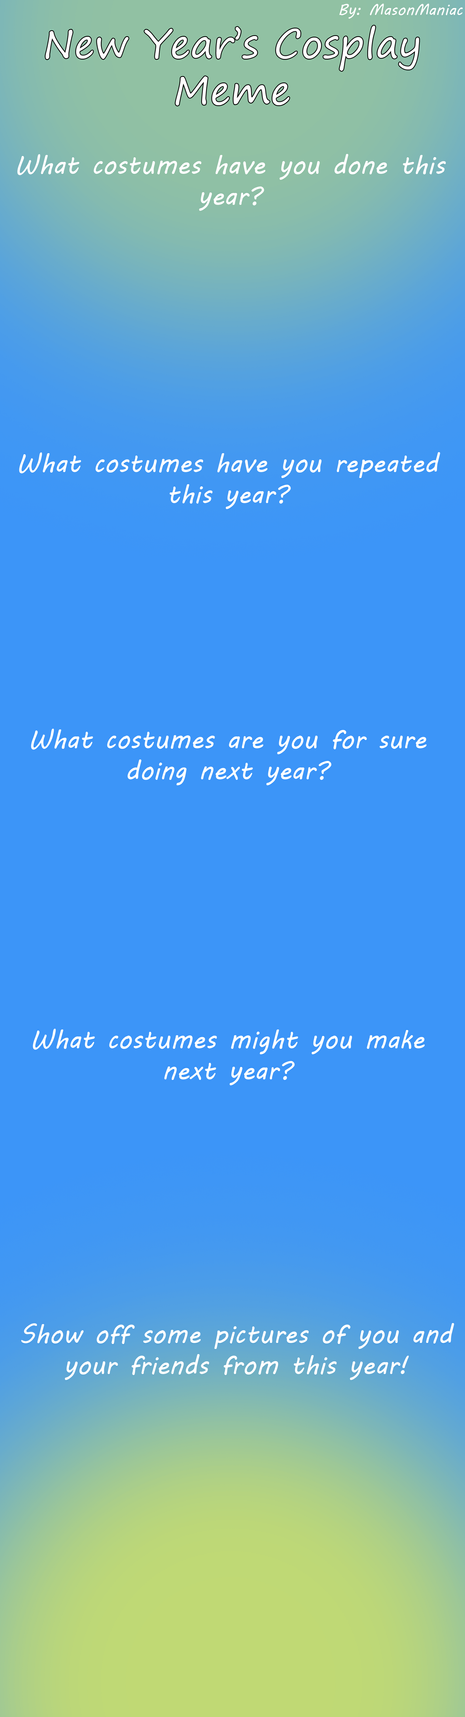 New Year's cosplay meme blank by MasonManiac